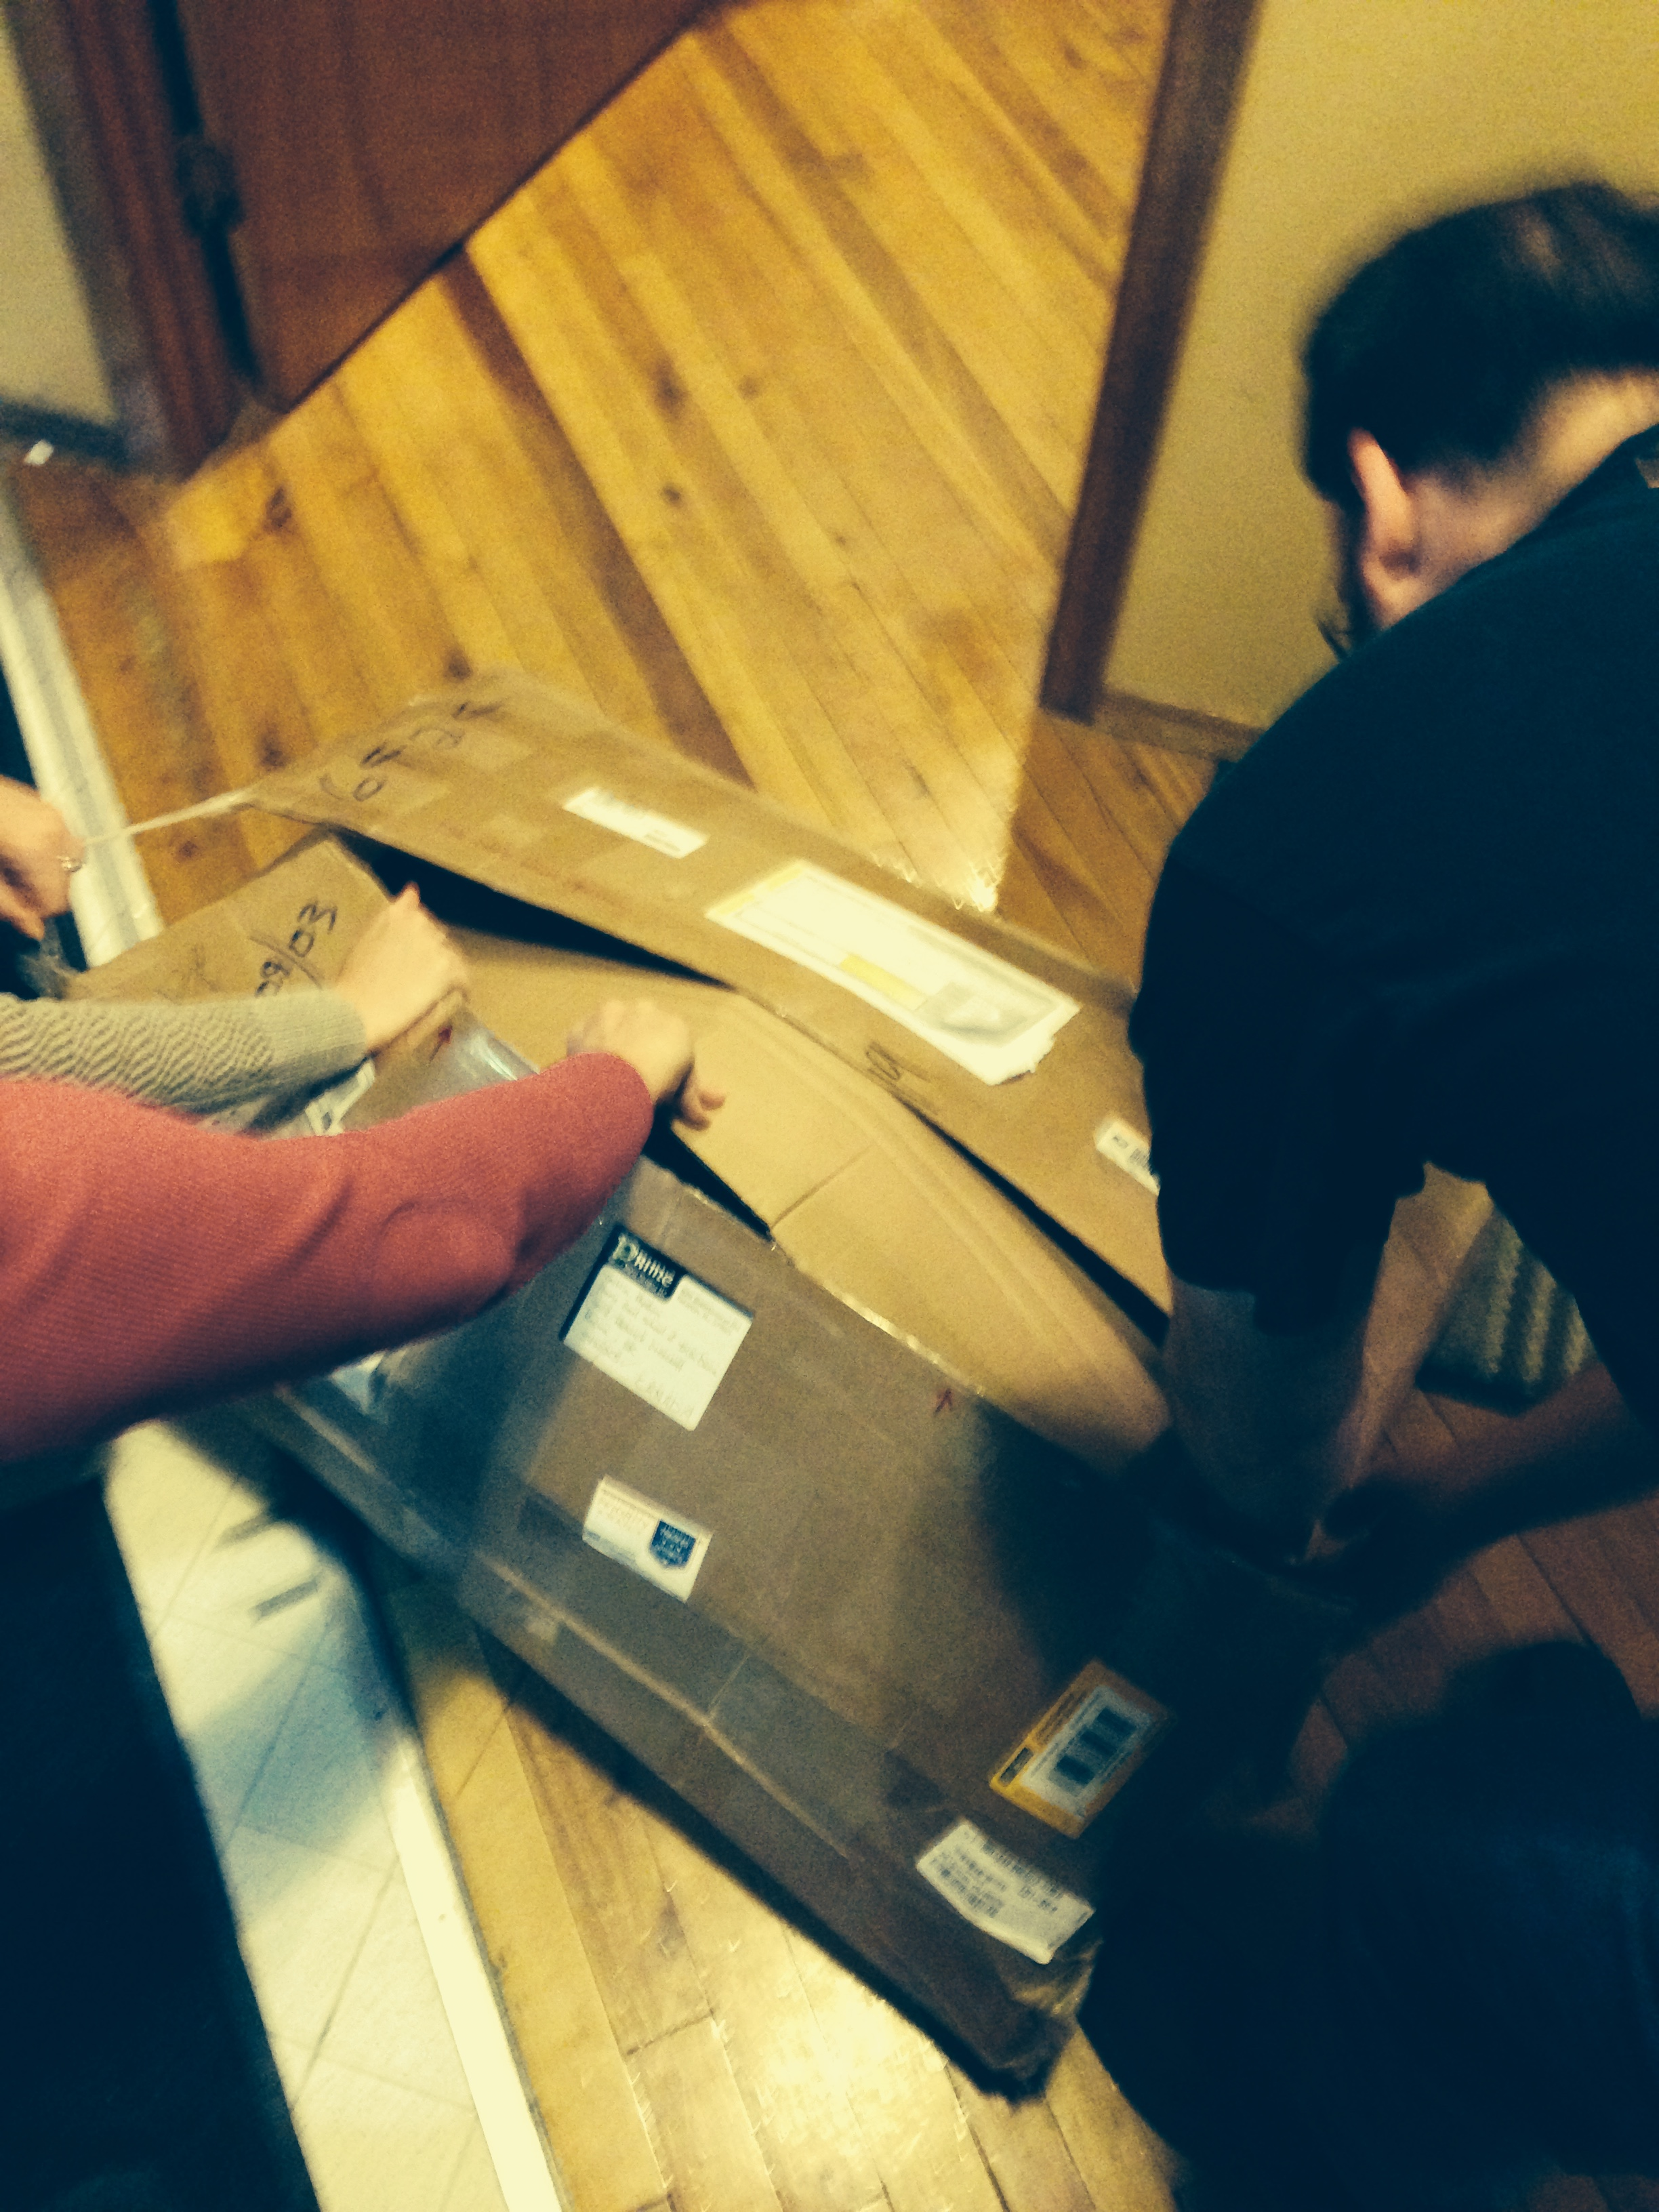 We couldn't wait to tear into the boxes for our new costumes!